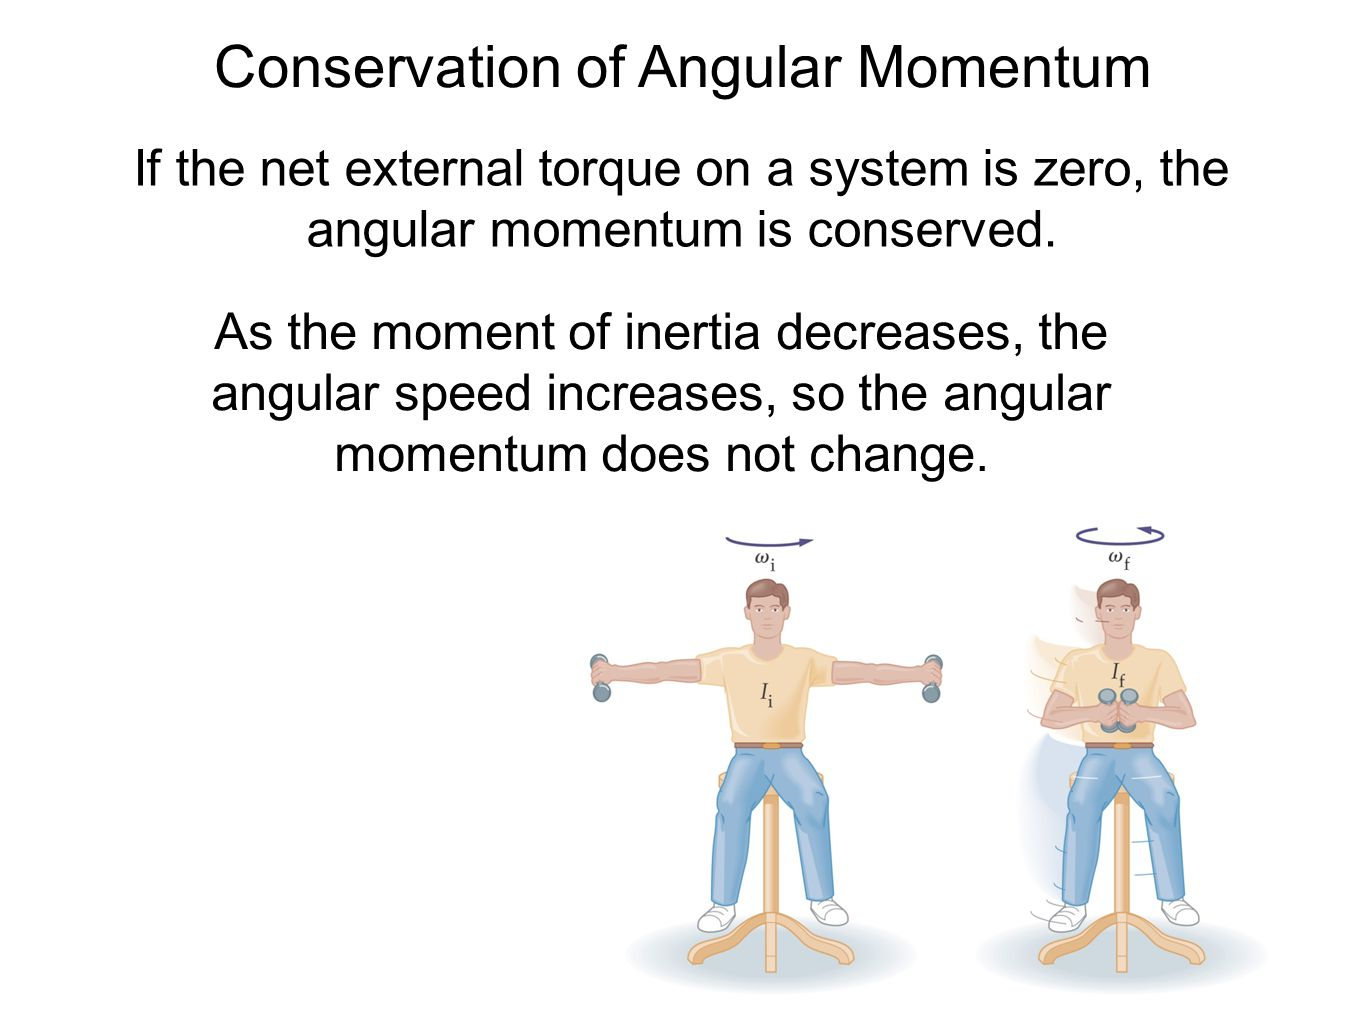 Conservation of Angular Momentum If the net external torque on a system is zero, the angular momentum is conserved. As the moment of inertia decreases